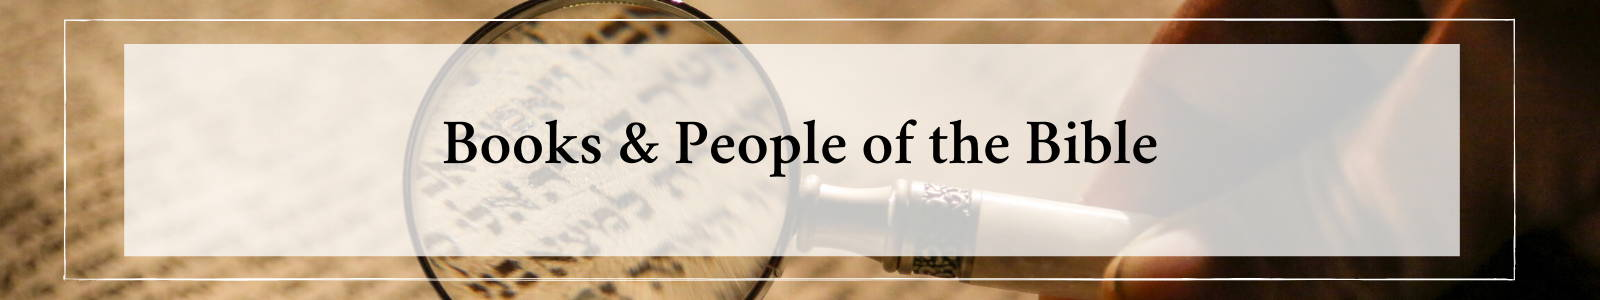 Books and People of the Bible